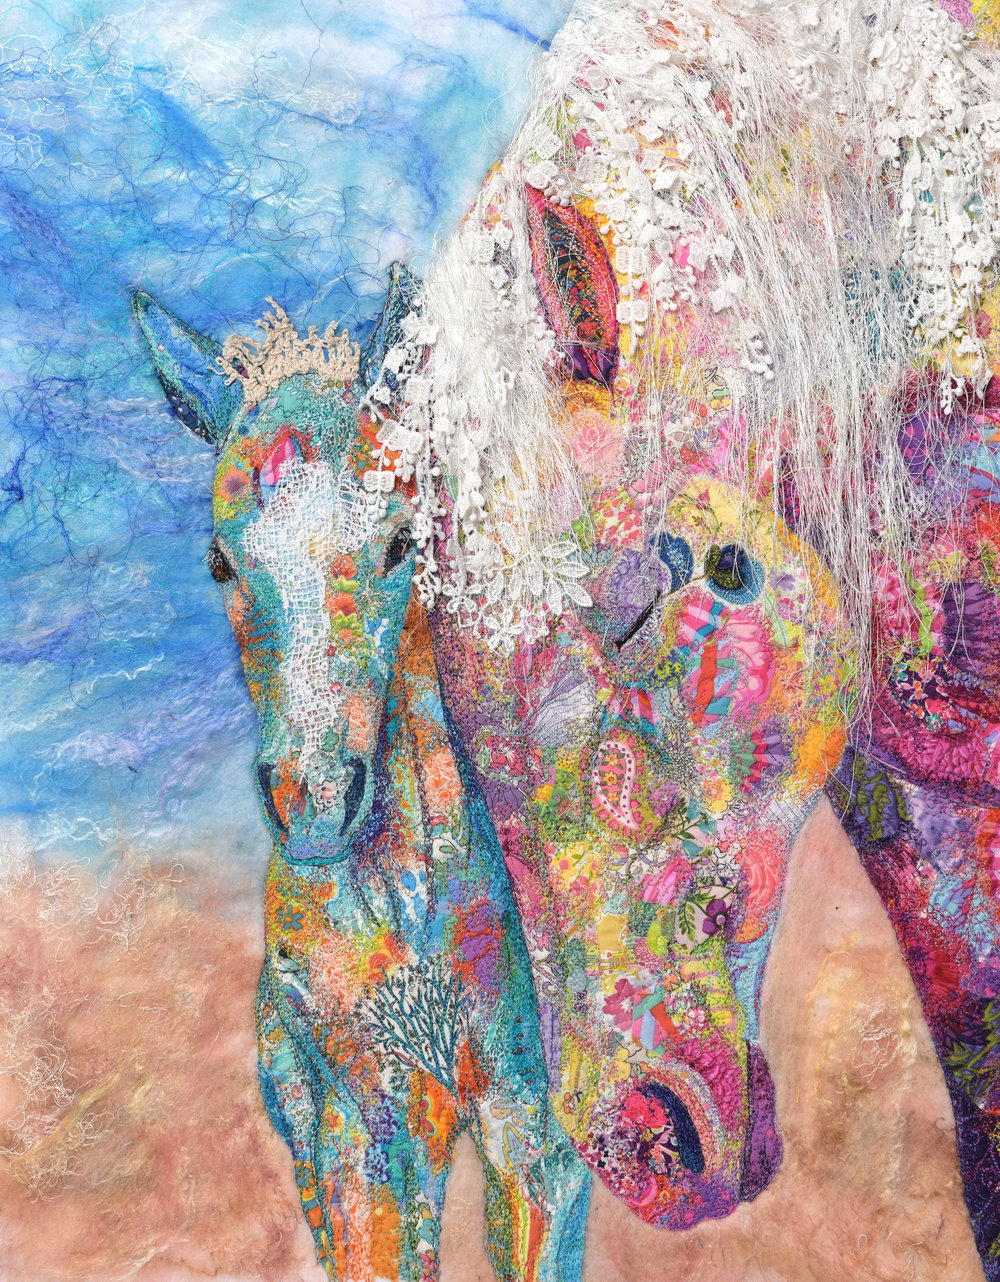 "Adoration   Inspired by meditation I was shown and felt the deep connection of ""motherhood,"" and protection it embodies. This precious bond perpetuates survival, yet does not guarantee it. Mountain lions, storms and fights within the herd are a constant threat. I used delicate fibers such as banana fibers and lace to symbolize the uncertainty that awaits this colt. Tree motifs were incorporated to represent their strong family roots.  Techniques: Machine embellished, wet-felted, free-motion embroidery, raw appliqué, thread painting Materials: Cotton, lace, Merino wool, tussah silk, banana fibers, vintage doilies Original art. Photo reference with permission by Kent Keller"